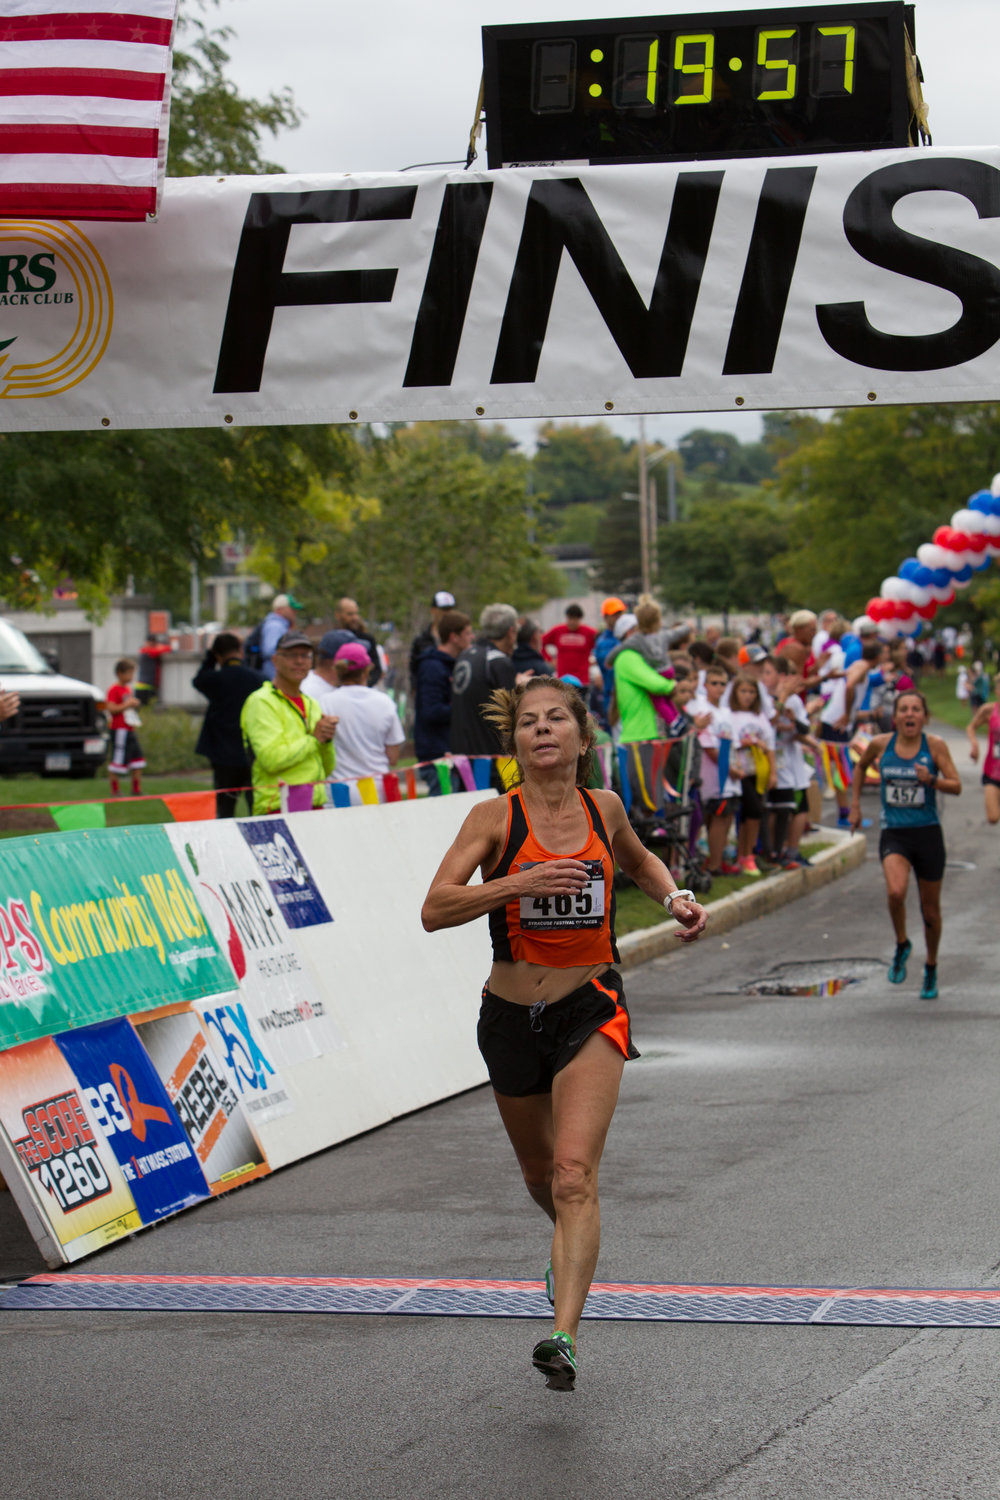 Kathryn Martin, of Asharoken, recently set the world record for ages 65-69 in the women's 5K race at the 24 th  Annual Syracuse Festival of Races. (Photo by Bob Brock).